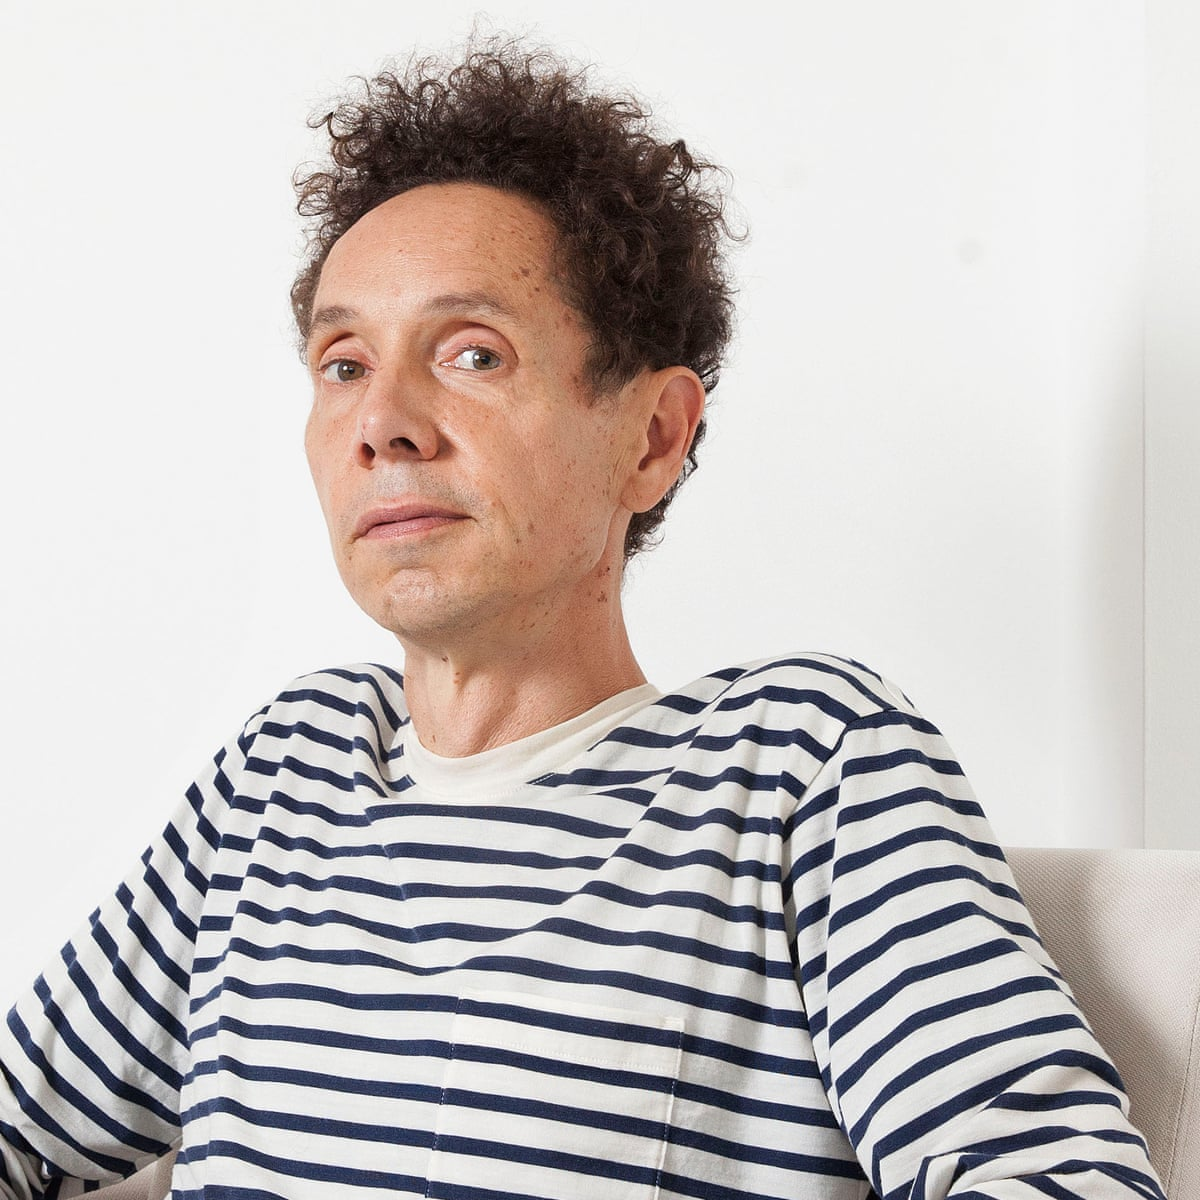 Talking To Strangers By Malcolm Gladwell Review Fascinating Study Of Why We Misread Those We Don T Know Books The Guardian